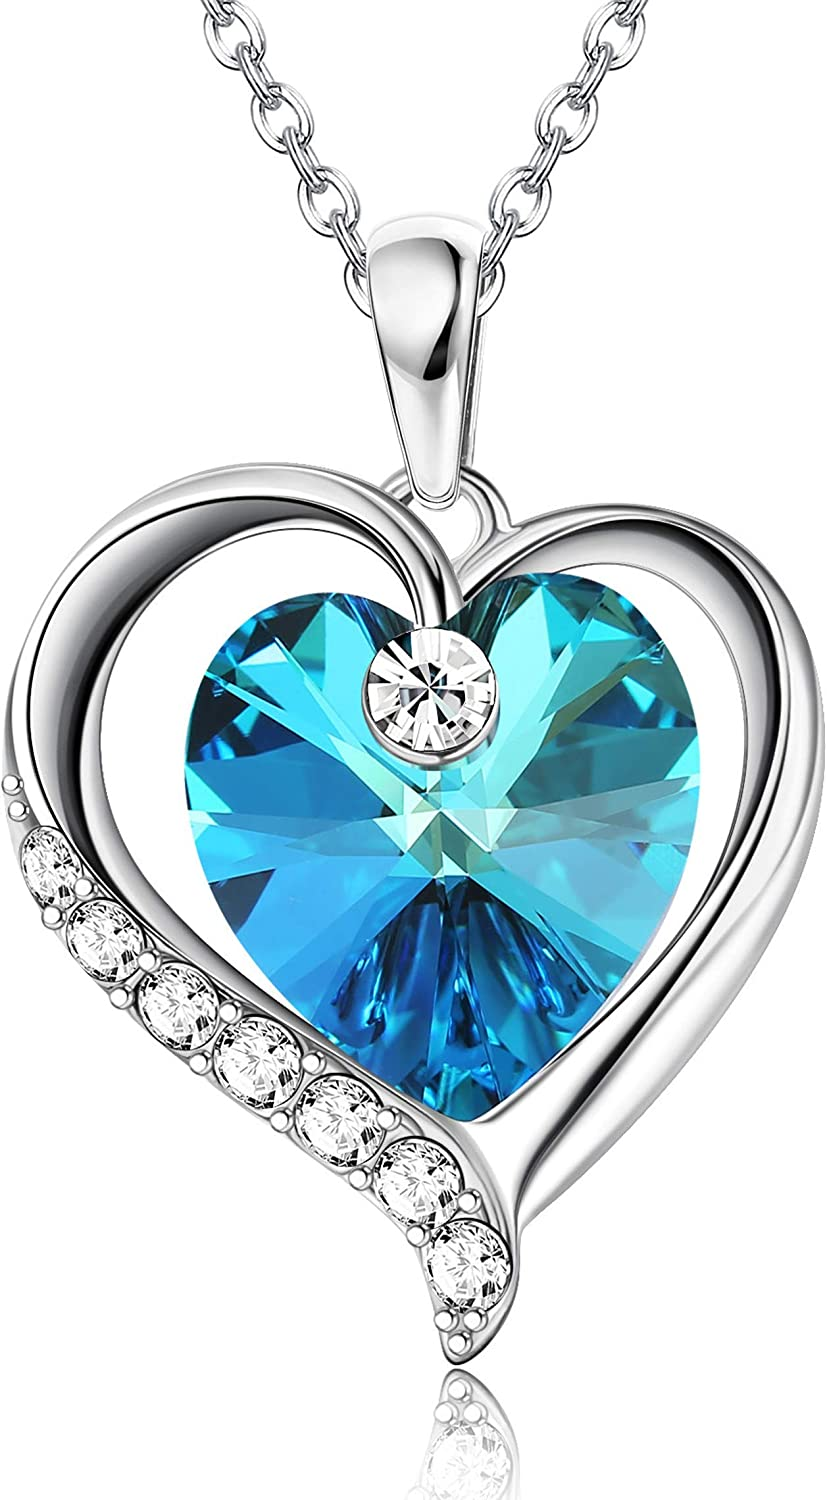 Sllaiss Sterling Silver Heart Pendant Virginia Beach Mall Light Sapphi Necklace with Max 58% OFF